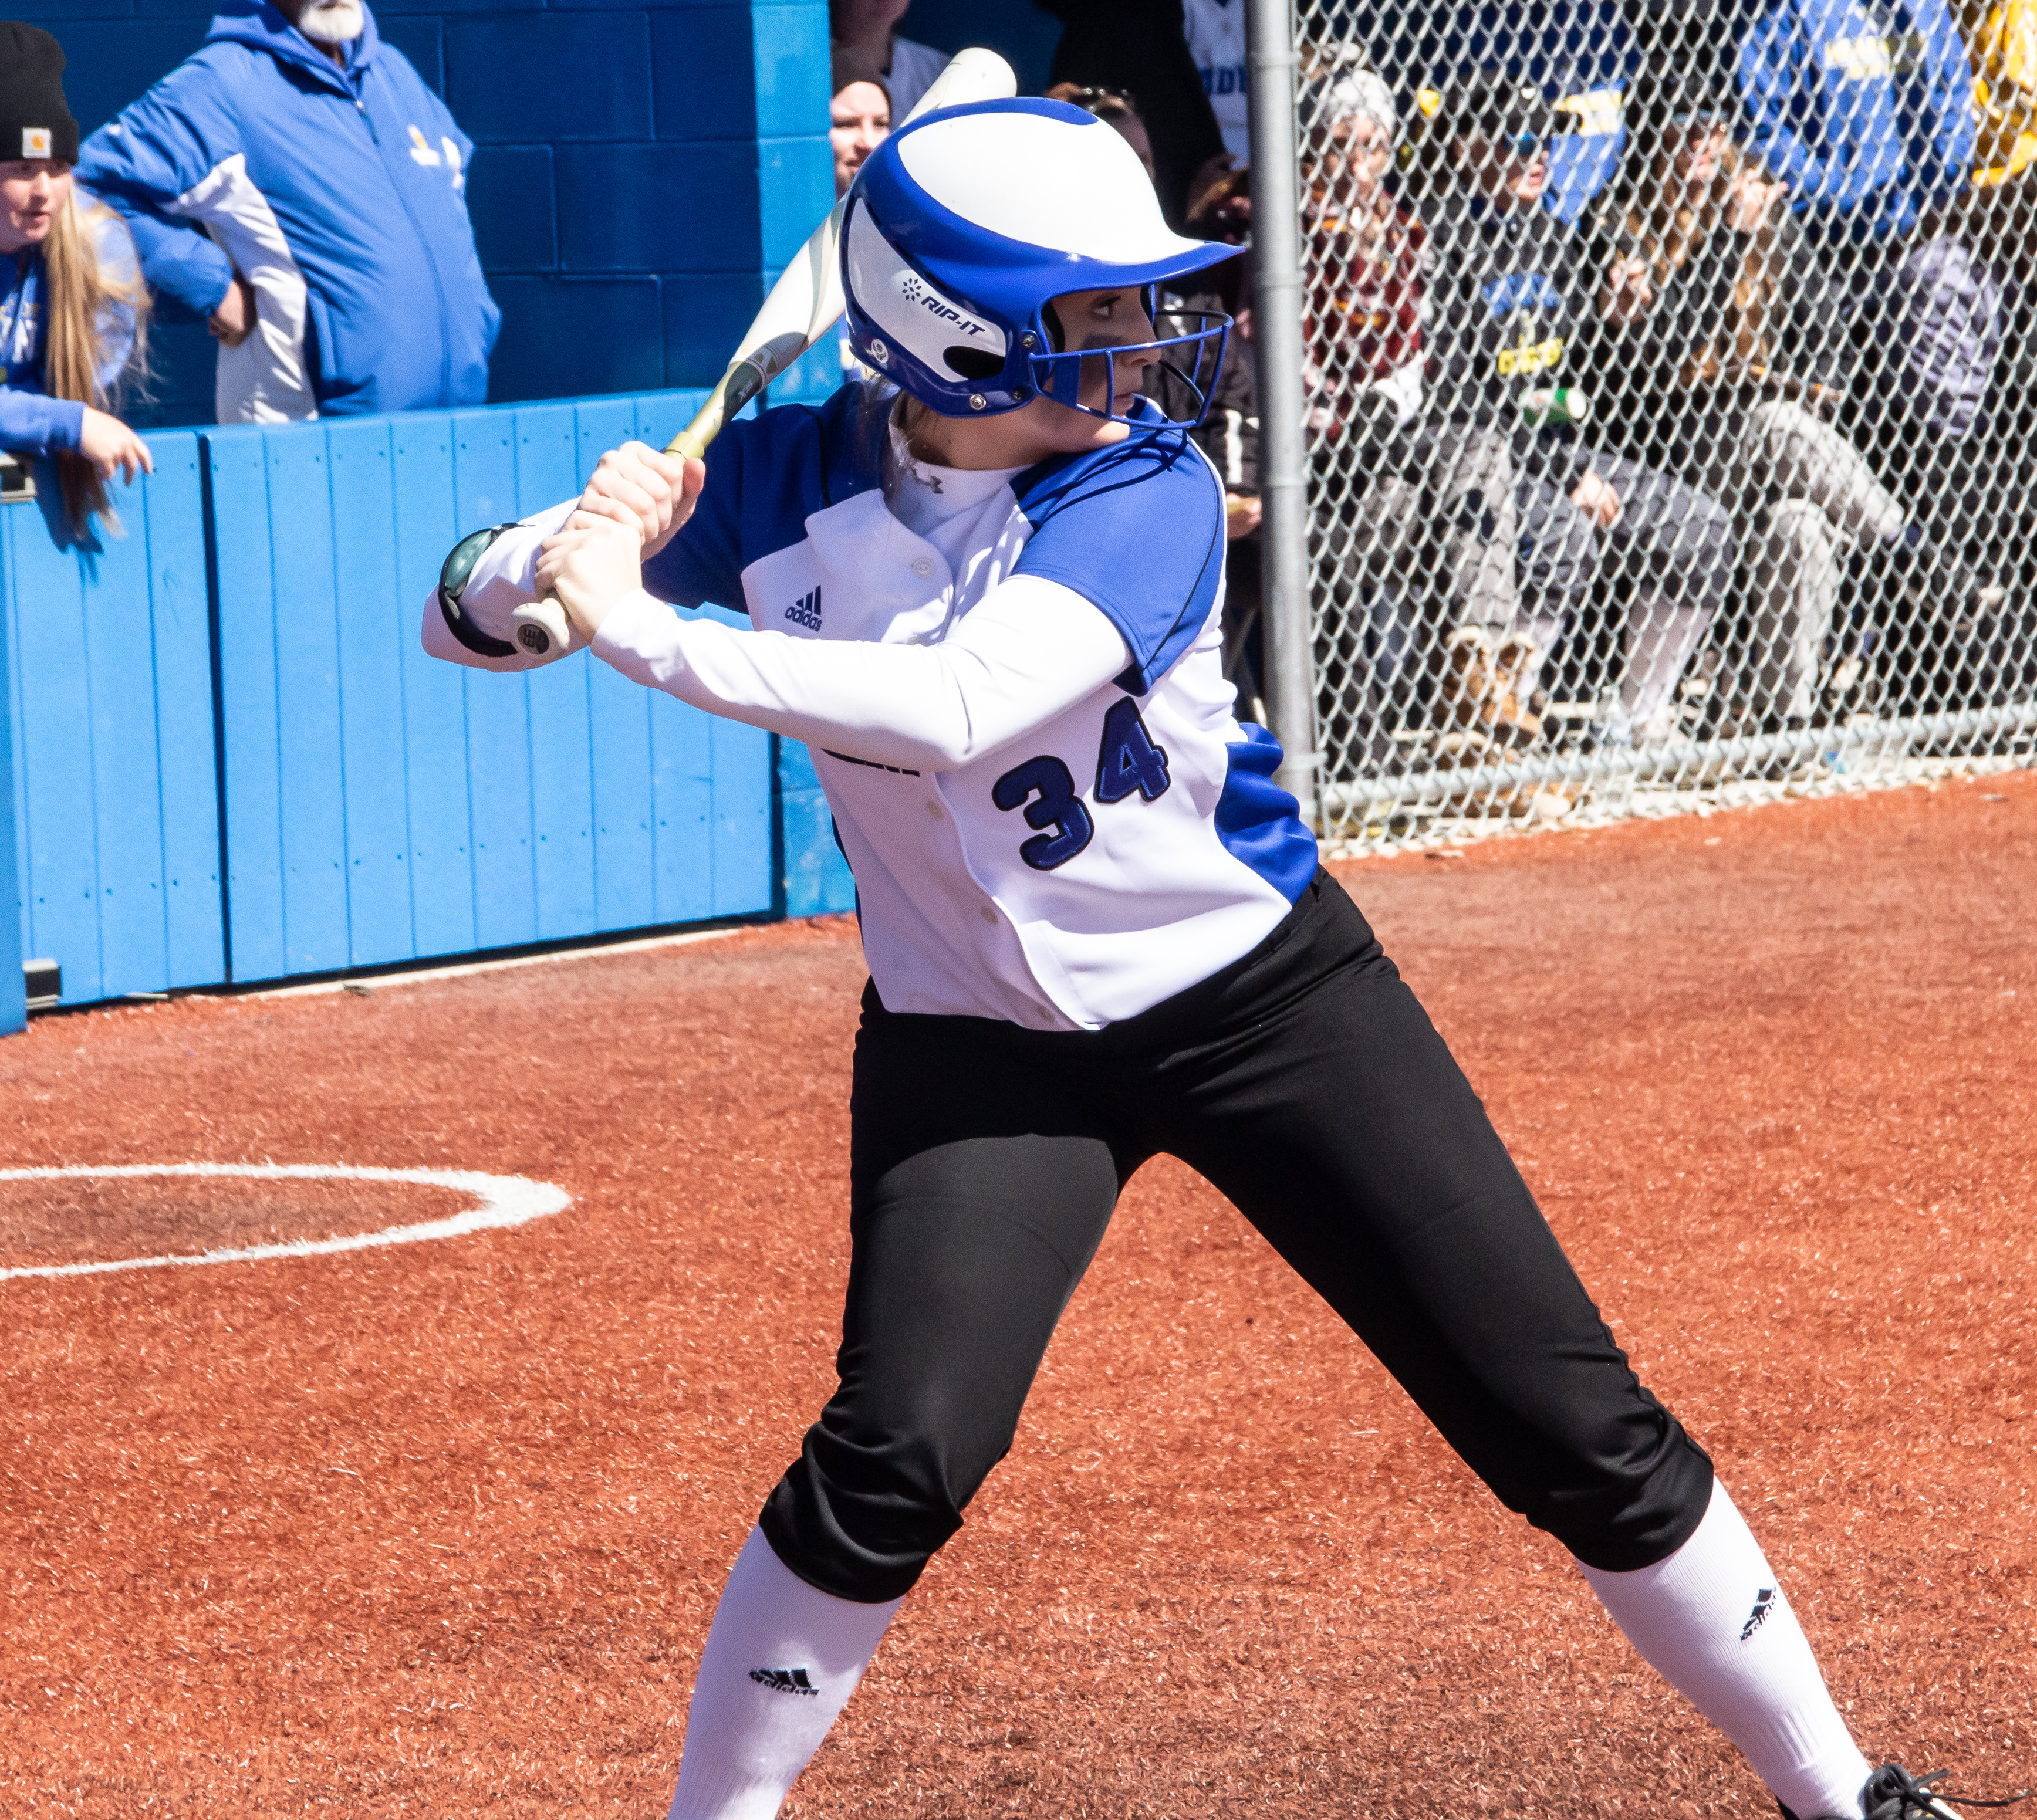 Photo of Jacyln Clark batting for the Hawks Softball team